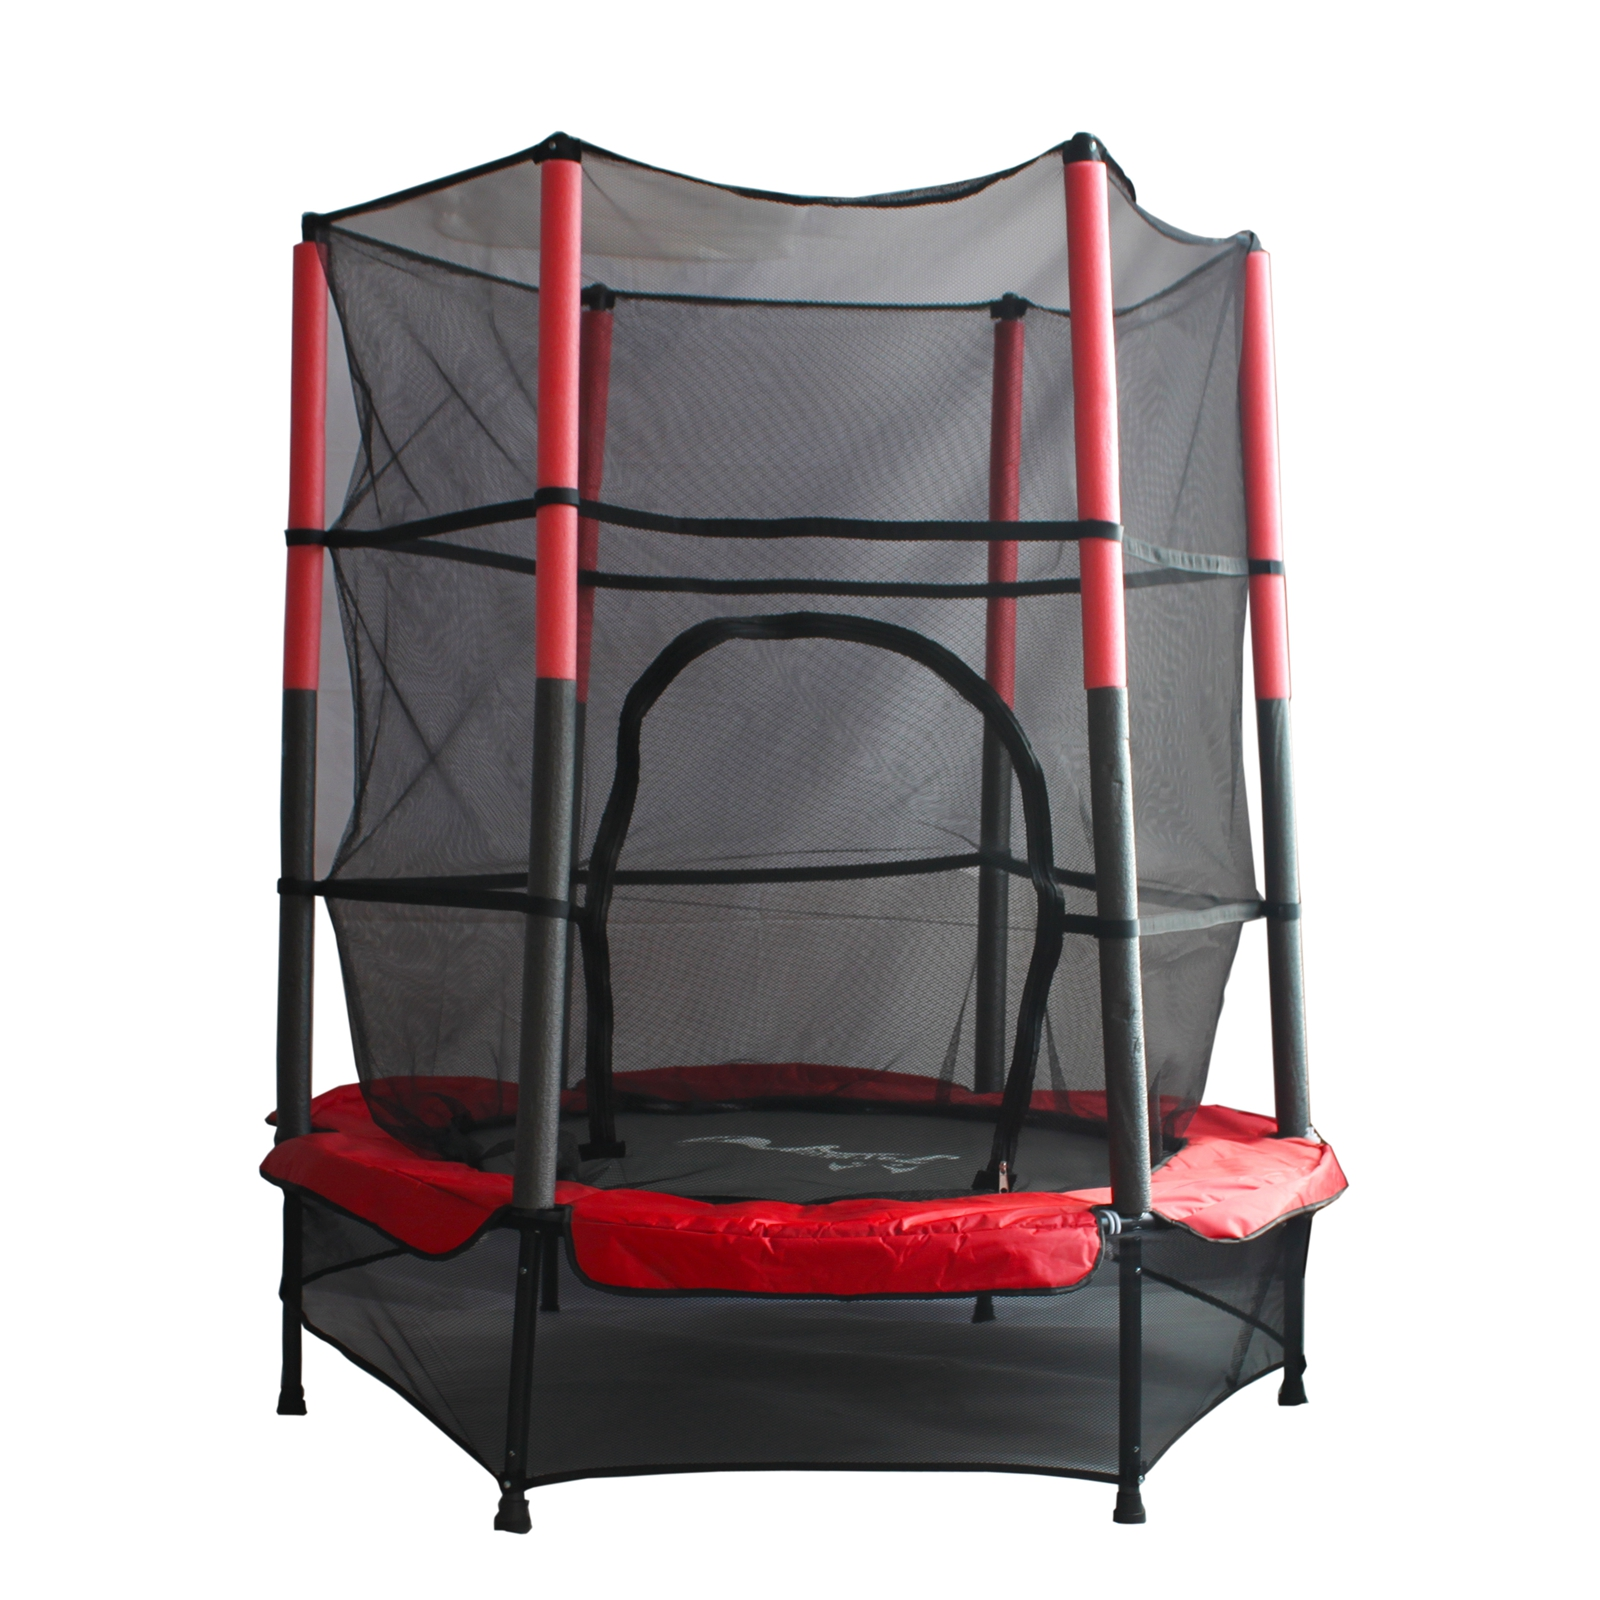 4.5FT 8FT 10FT 12FT 14FT 16FT Trampoline With Ladder Rain